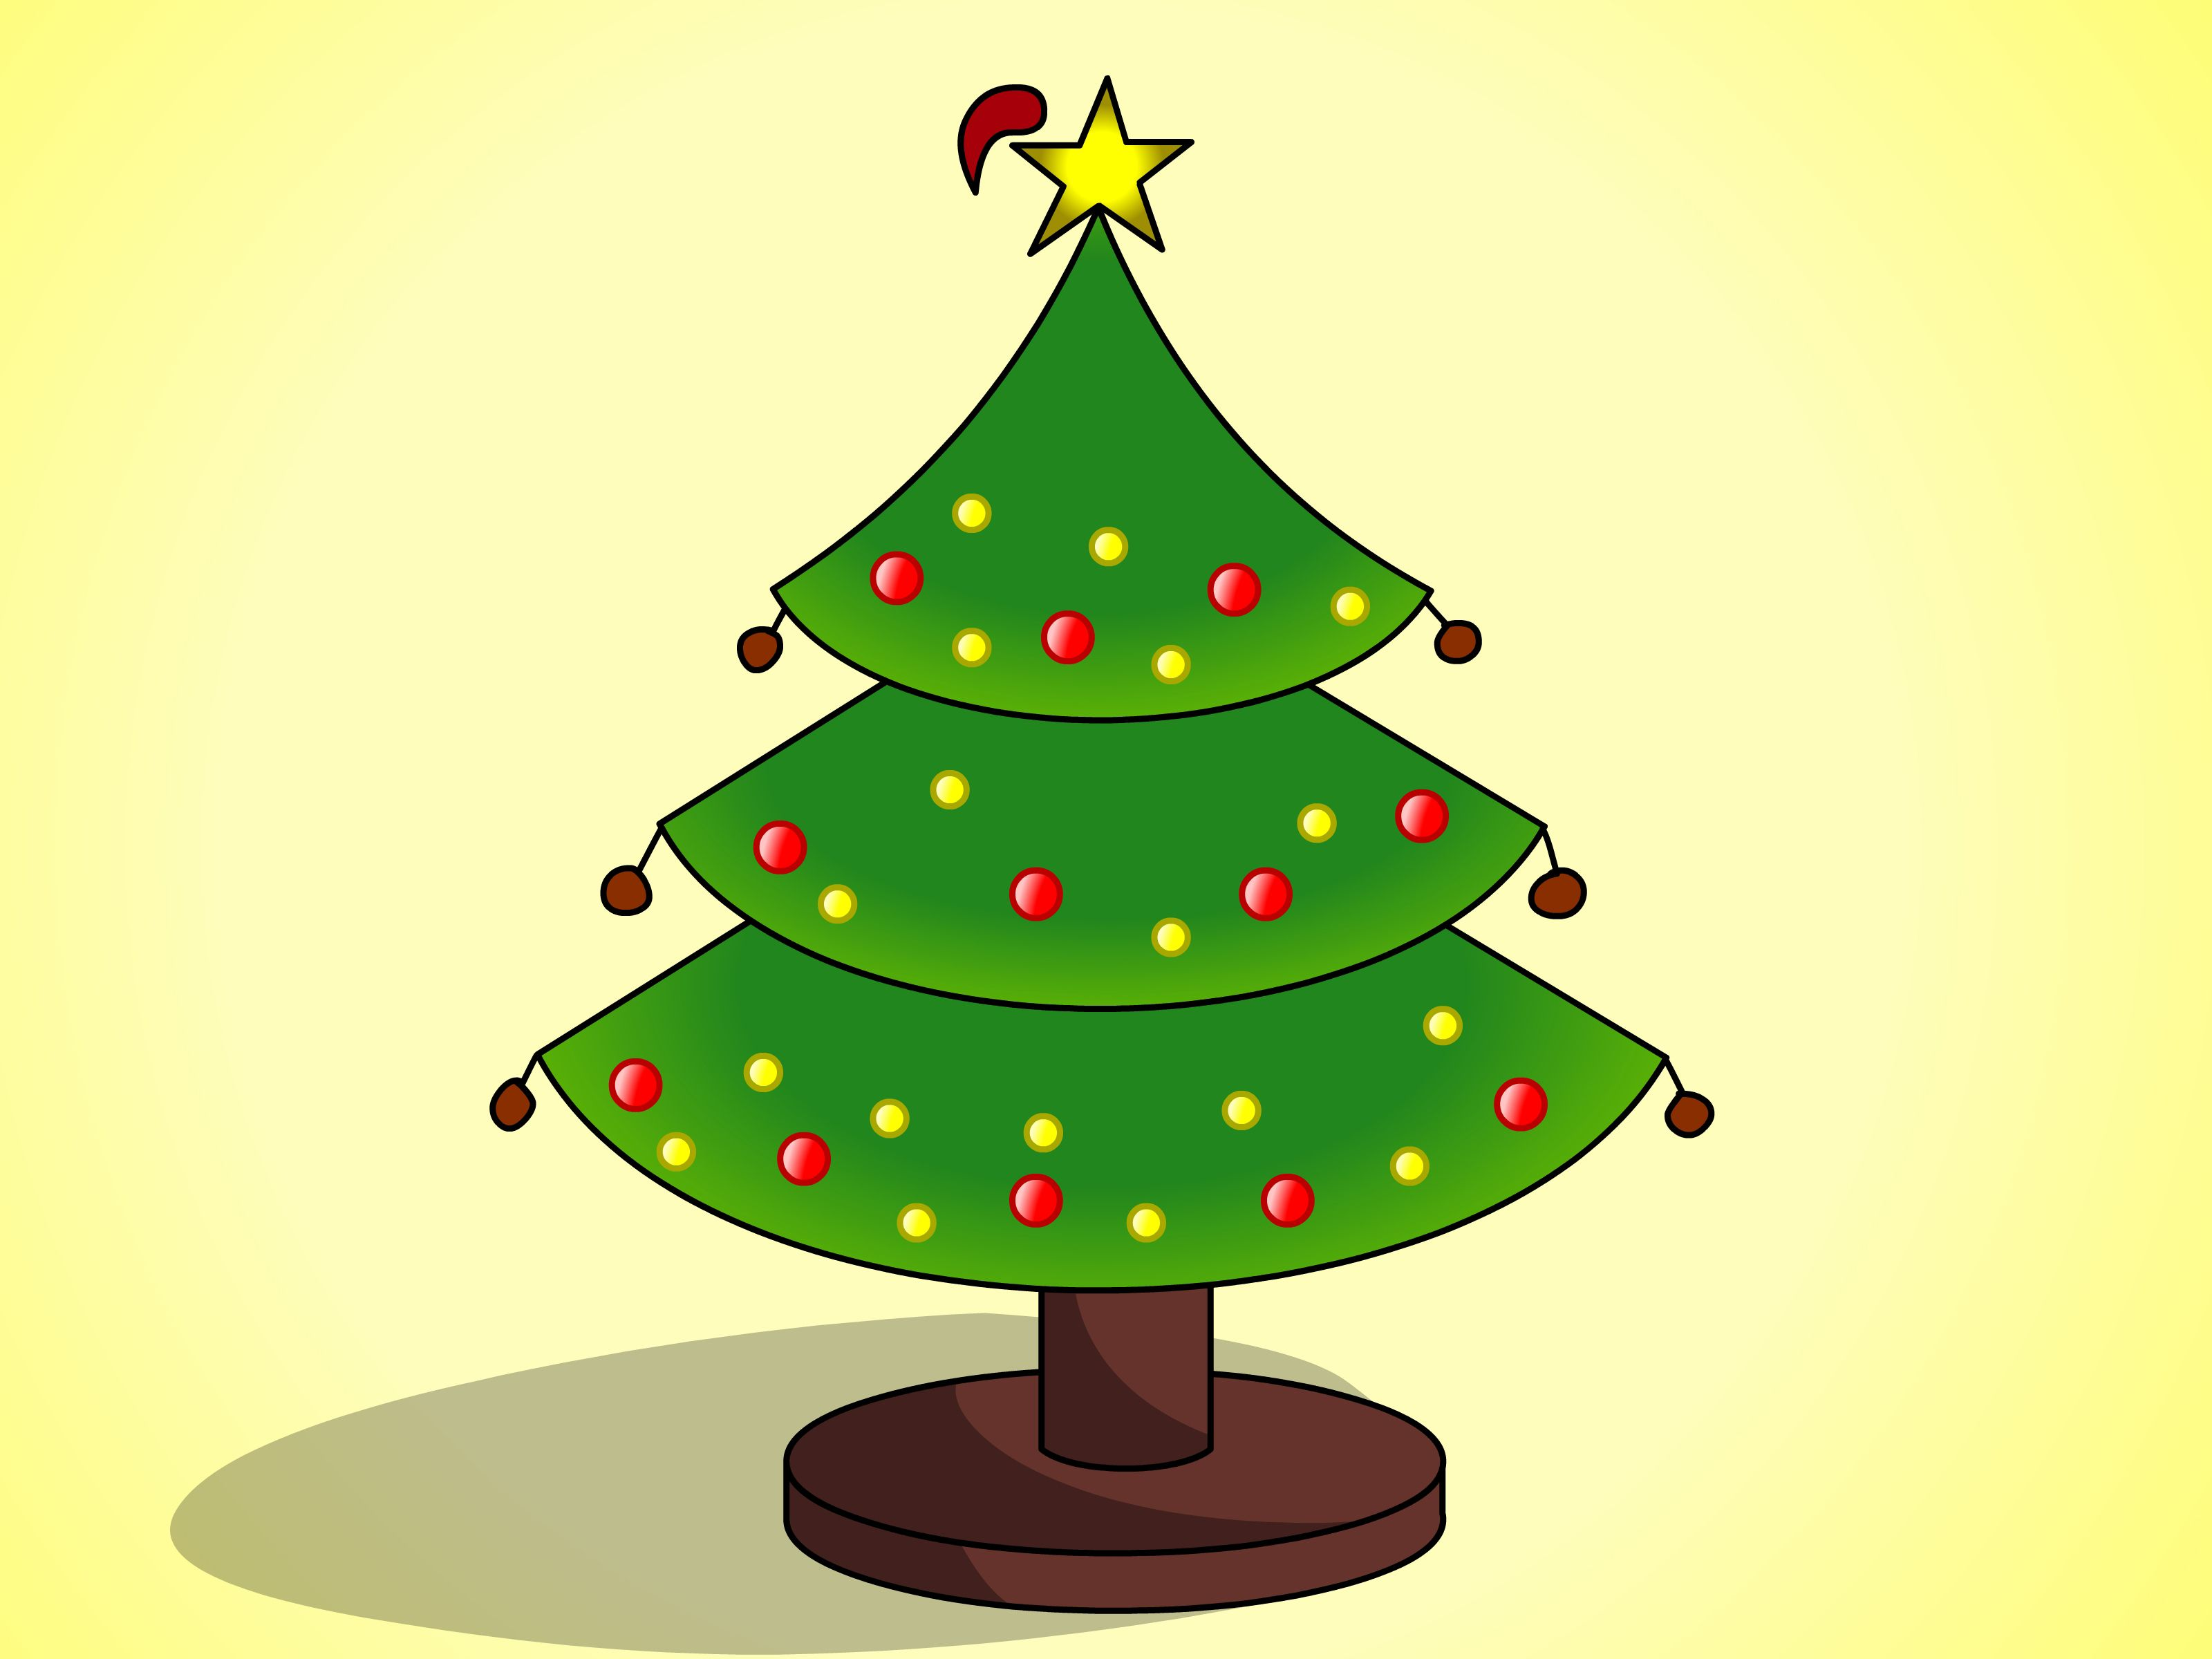 Xmas Tree Picture For Drawing Christmas Drawing Christmas Tree Drawing Christmas Tree Painting